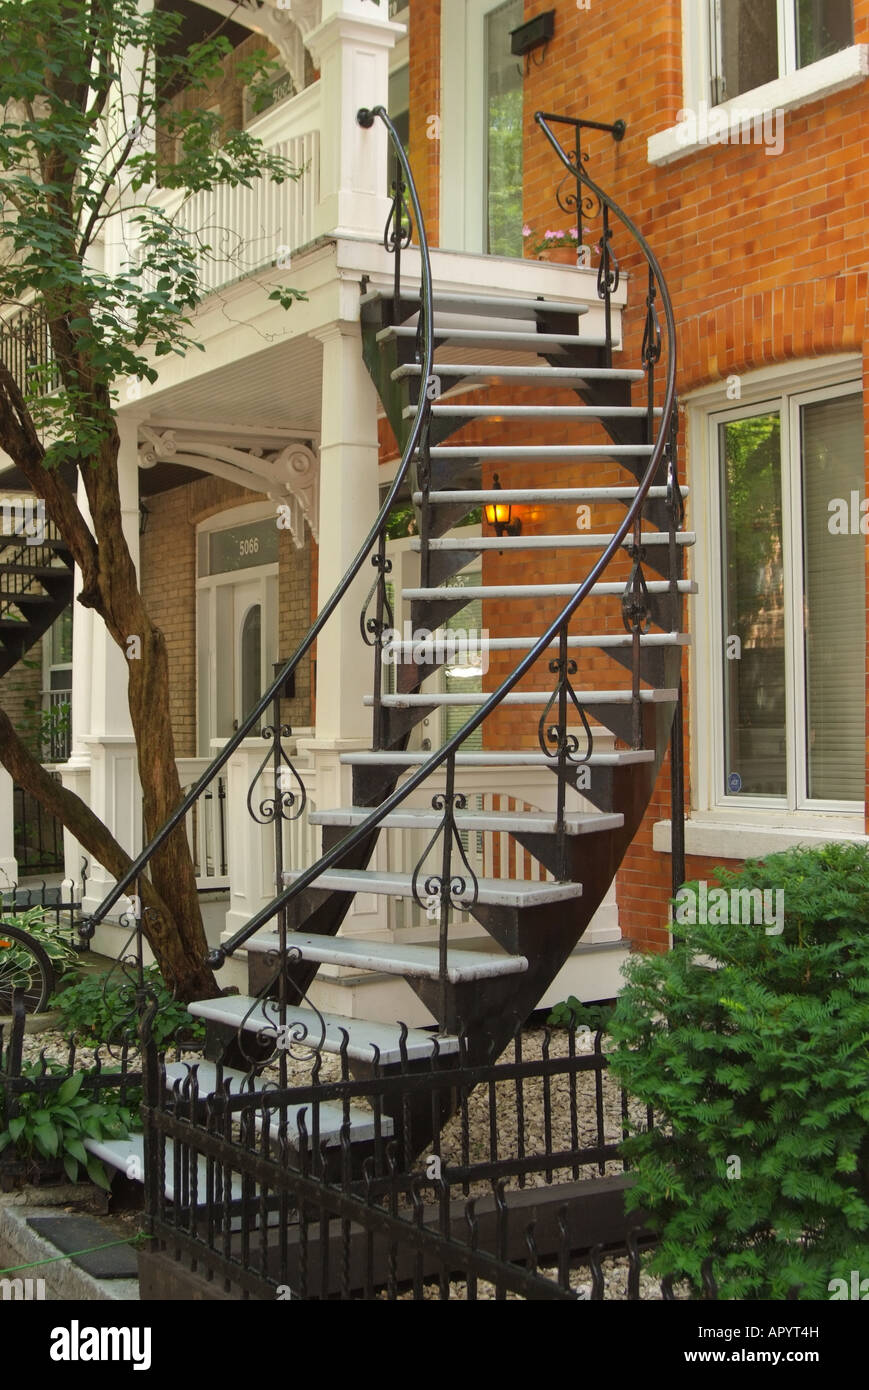 CANADA Quebec Montreal exterior staircase to the second floor made of wrought iron Stock Photo